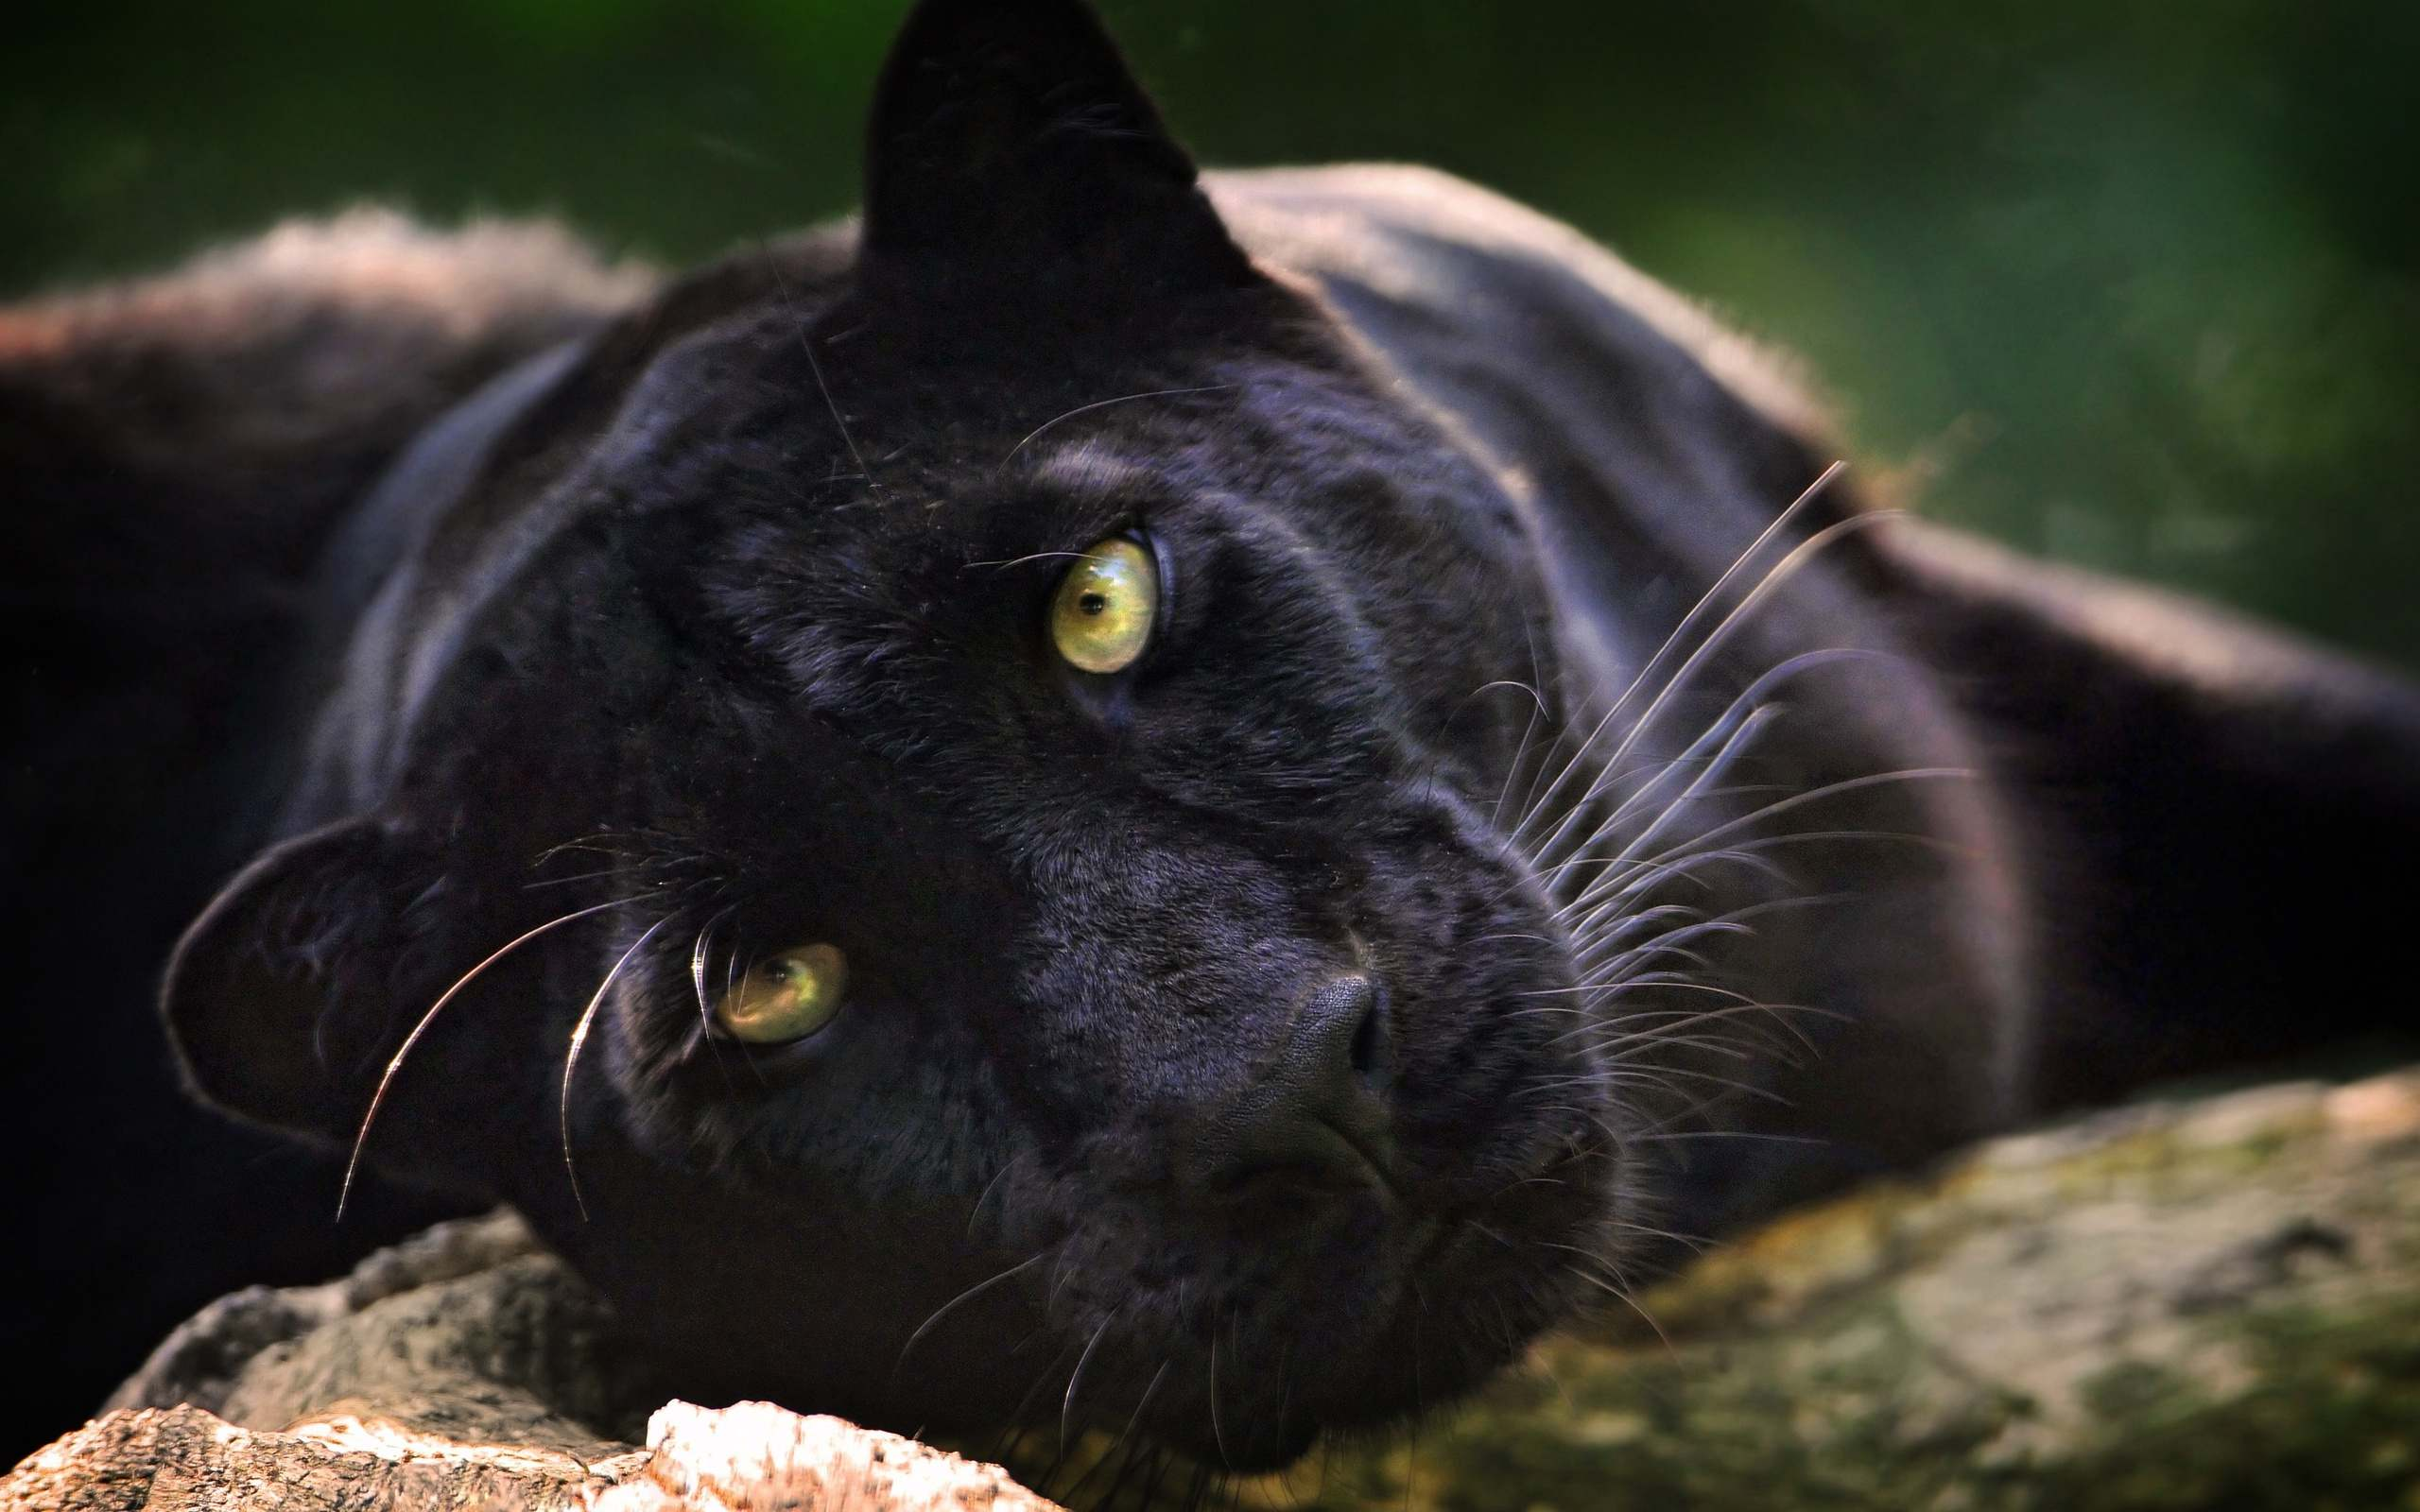 Panther animal wallpaper cute face